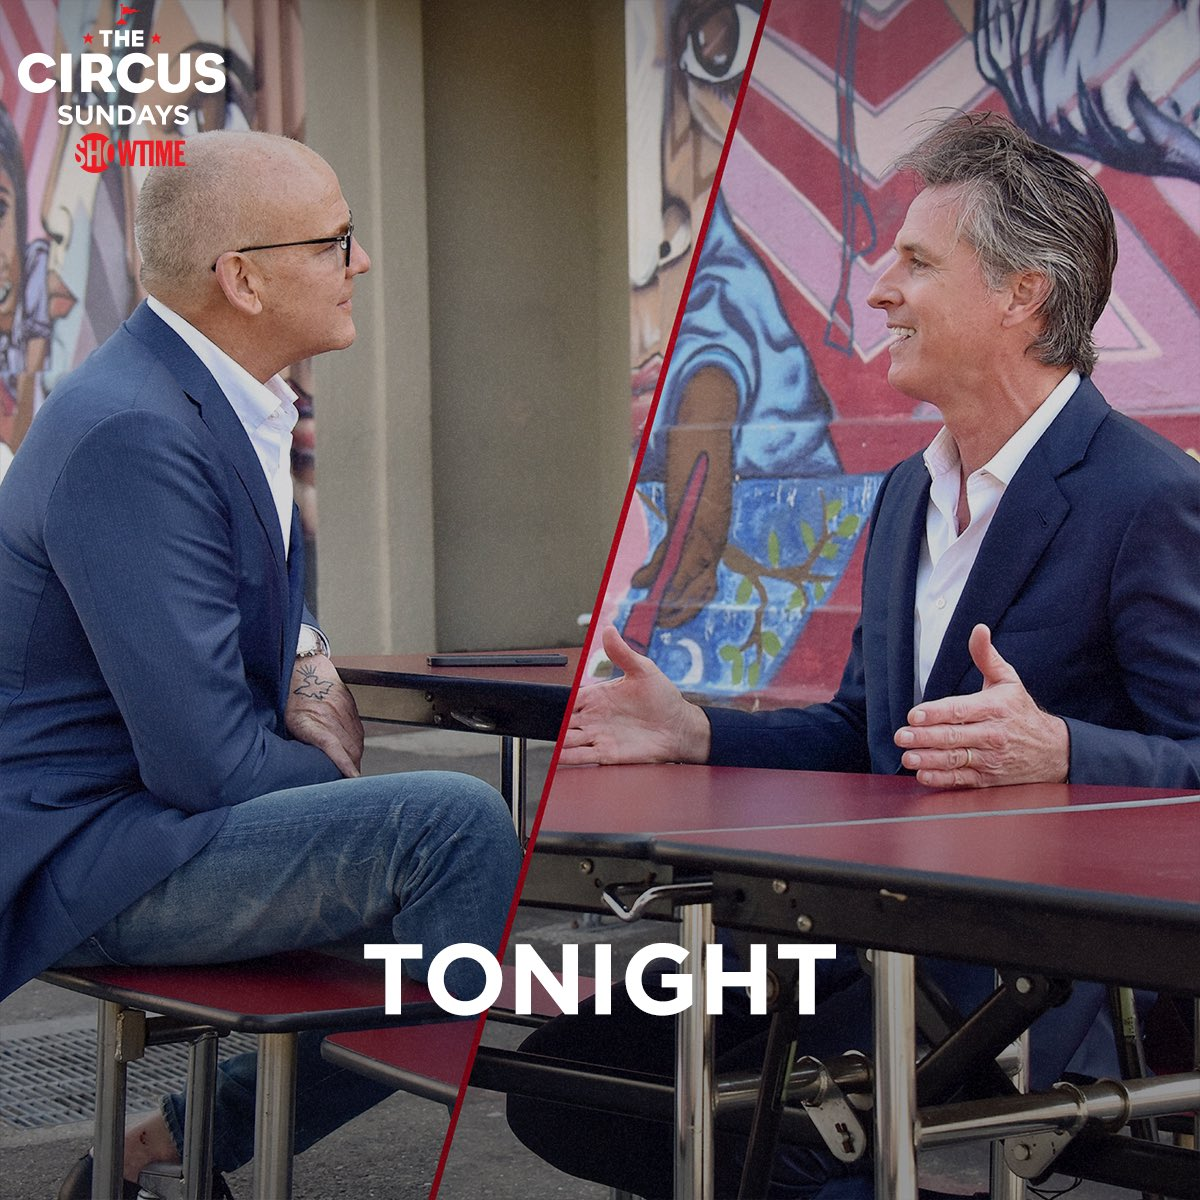 Less than 30 minutes until an all-new episode of @SHO_TheCircus!!! Tune in at 8pm ET/PT to see me and @GavinNewsom + ringmasters @alexwagner, @mmckinnon, and @jmpalmieri kick off the second half of Season 6 … only on @showtime.